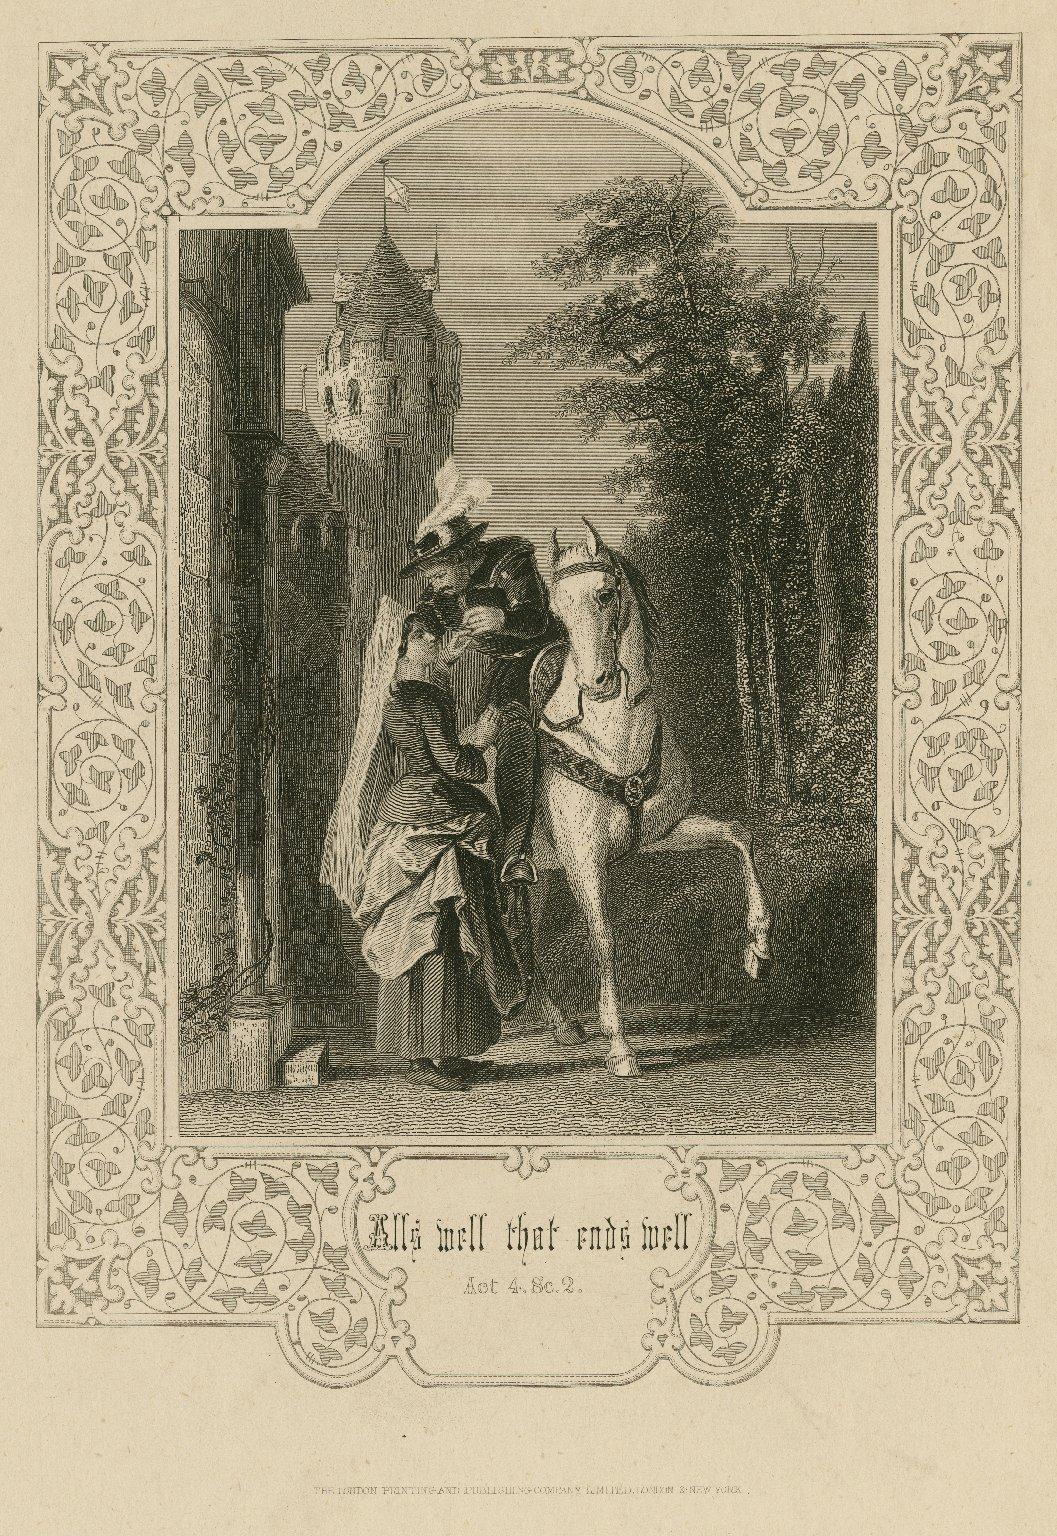 All's well that ends well, act 4, sc. 2 [graphic].